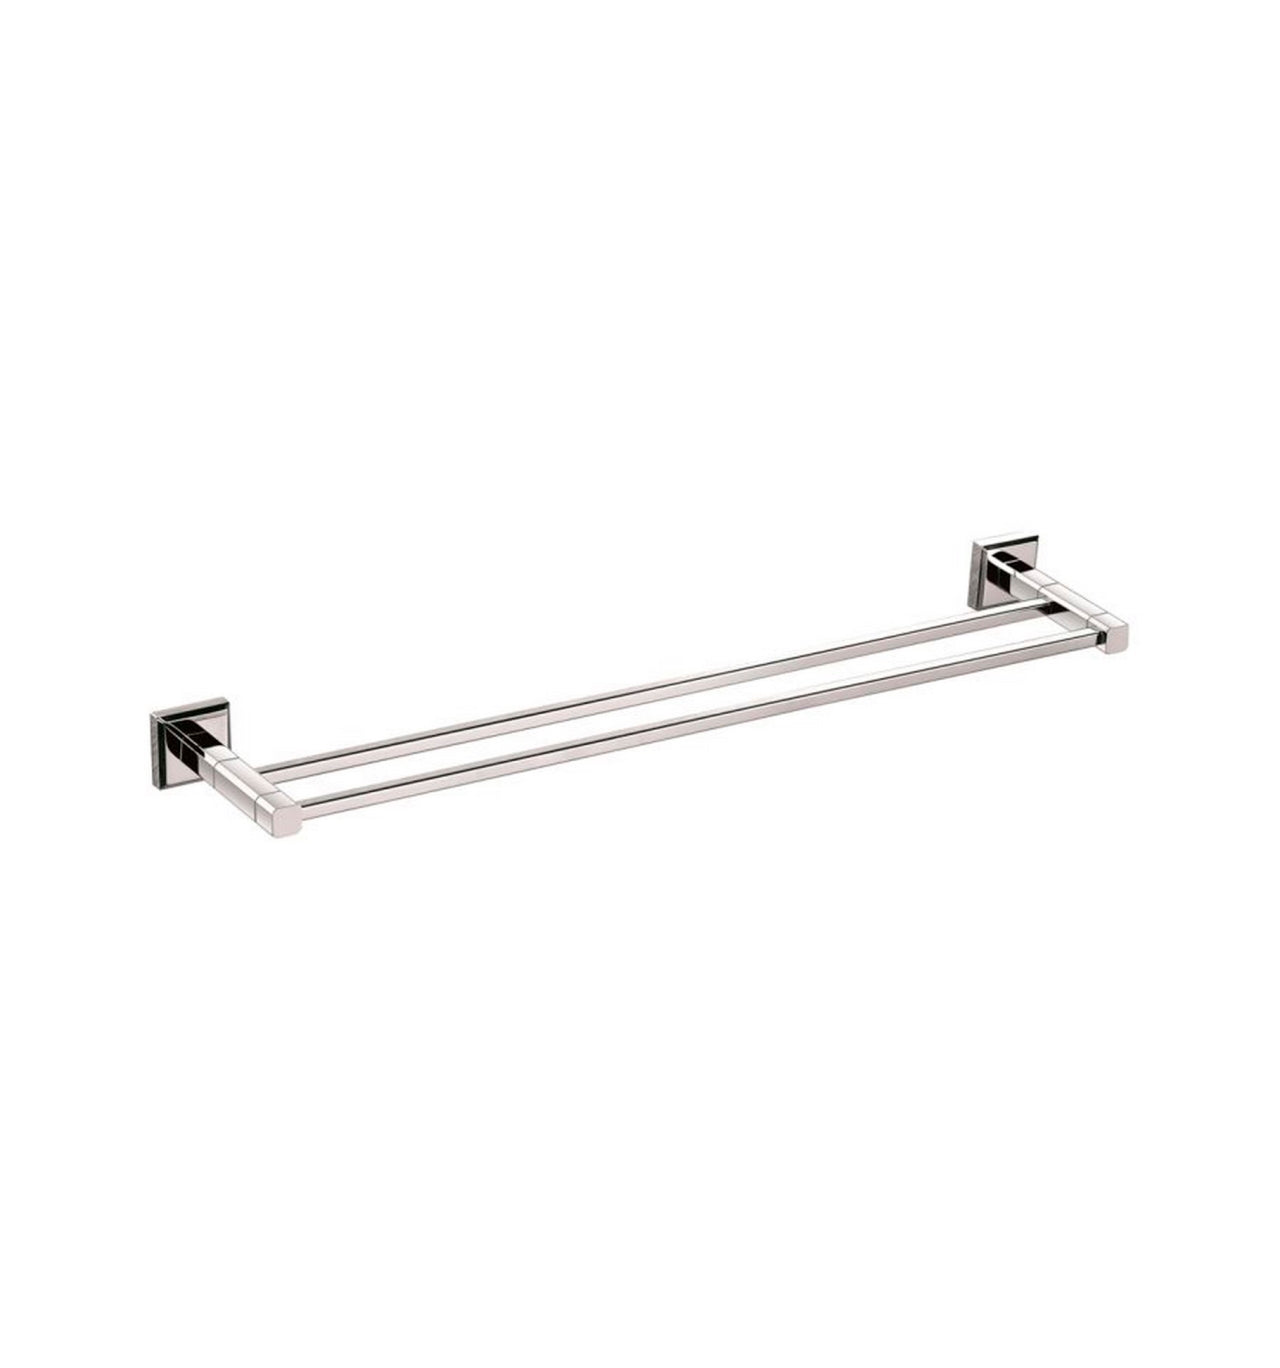 "Aqua Nuon 18"" Double Towel Bar"